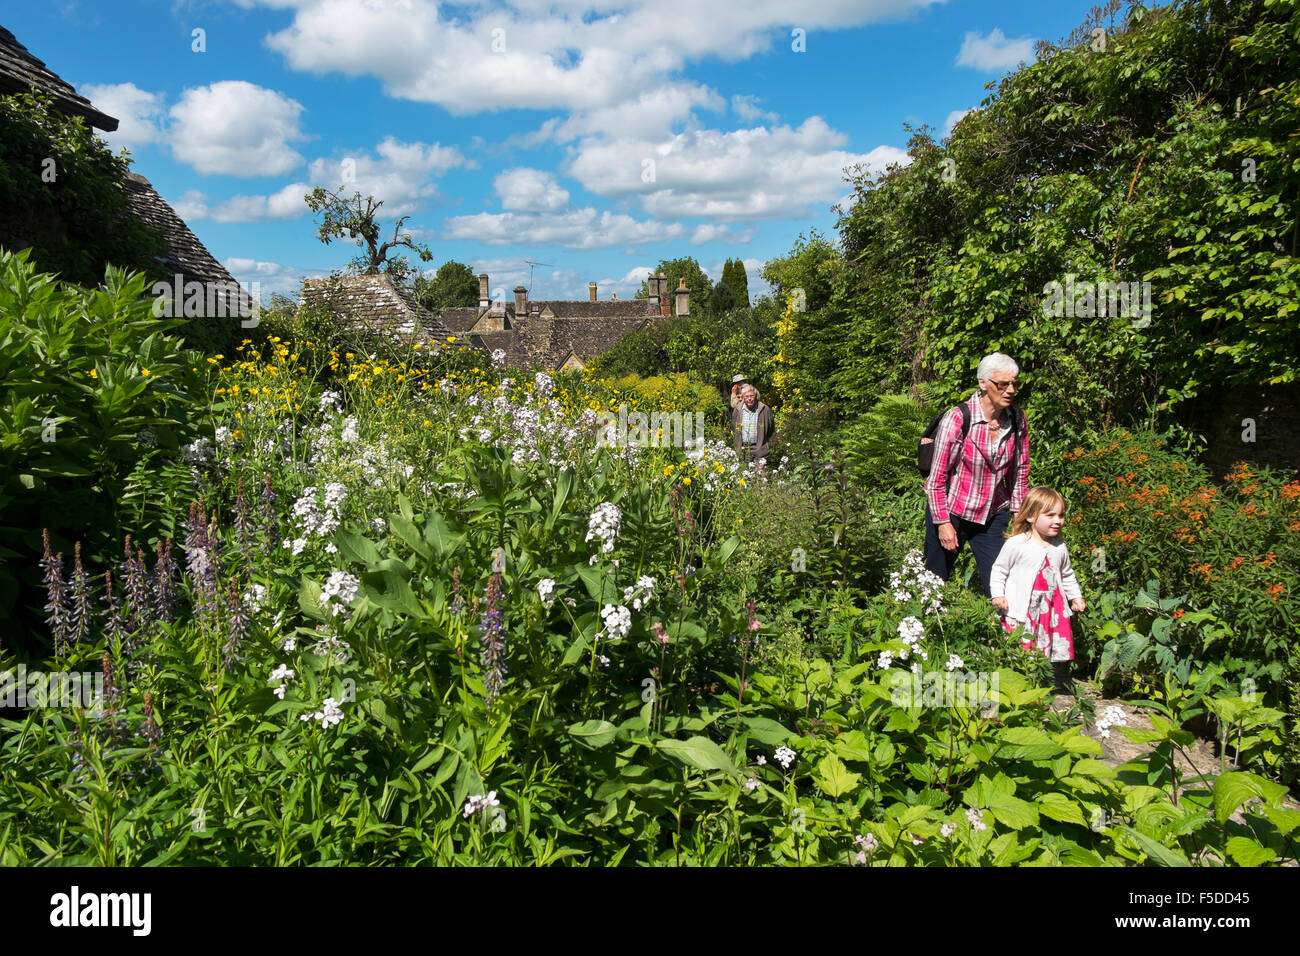 People walking up the path of a beautiful garden in the Open